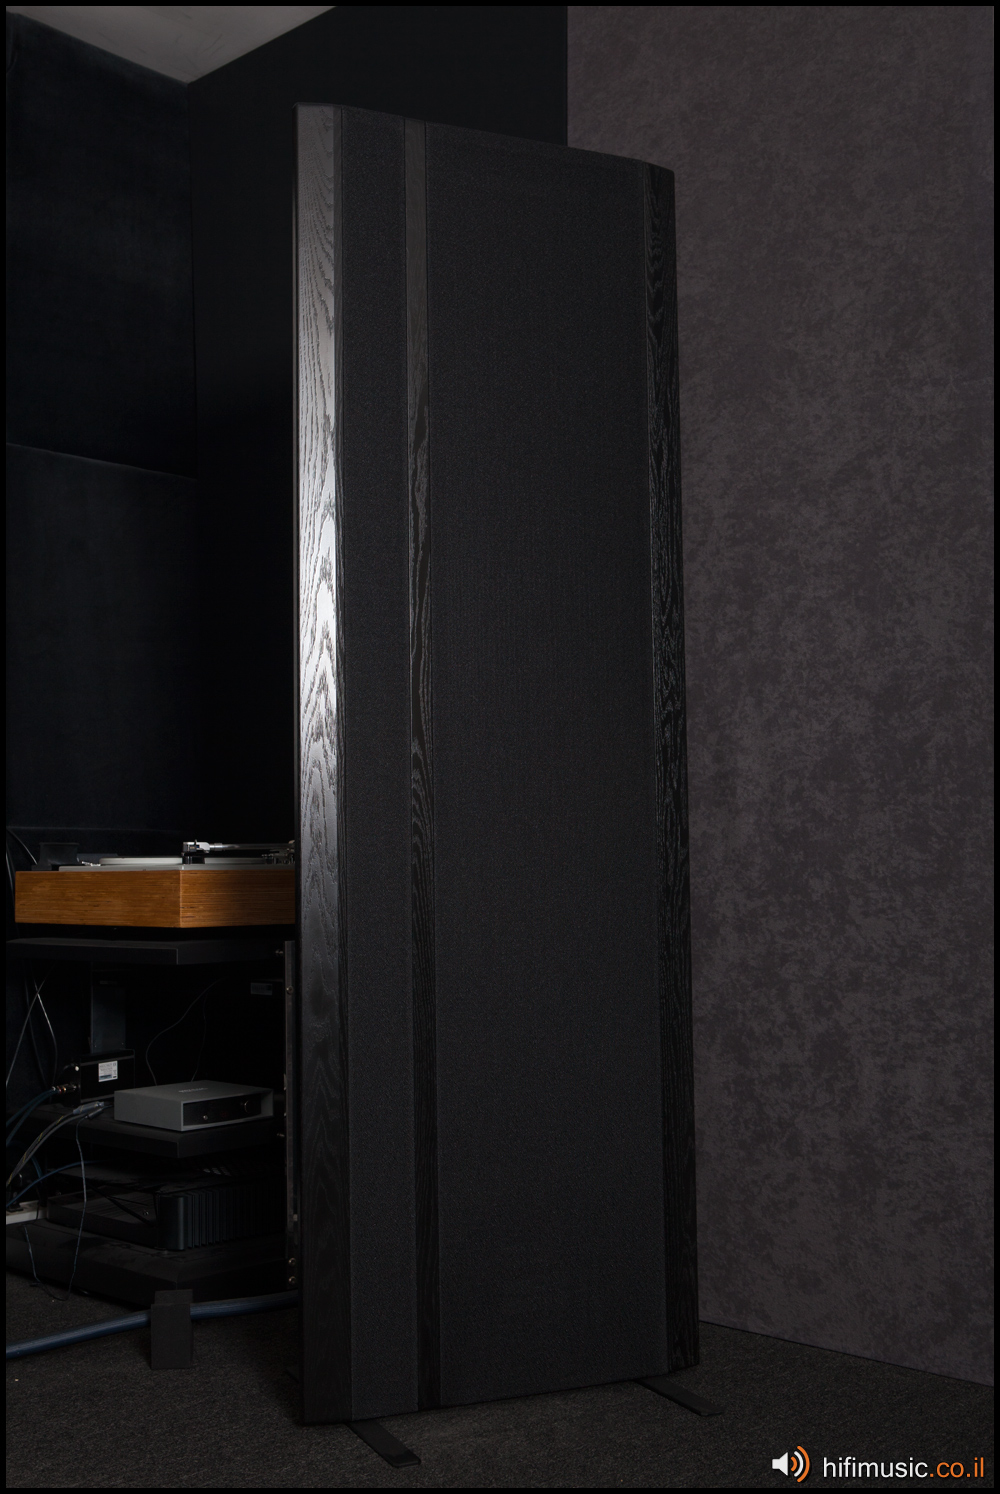 magnepan 3 7 review hifimusic. Black Bedroom Furniture Sets. Home Design Ideas